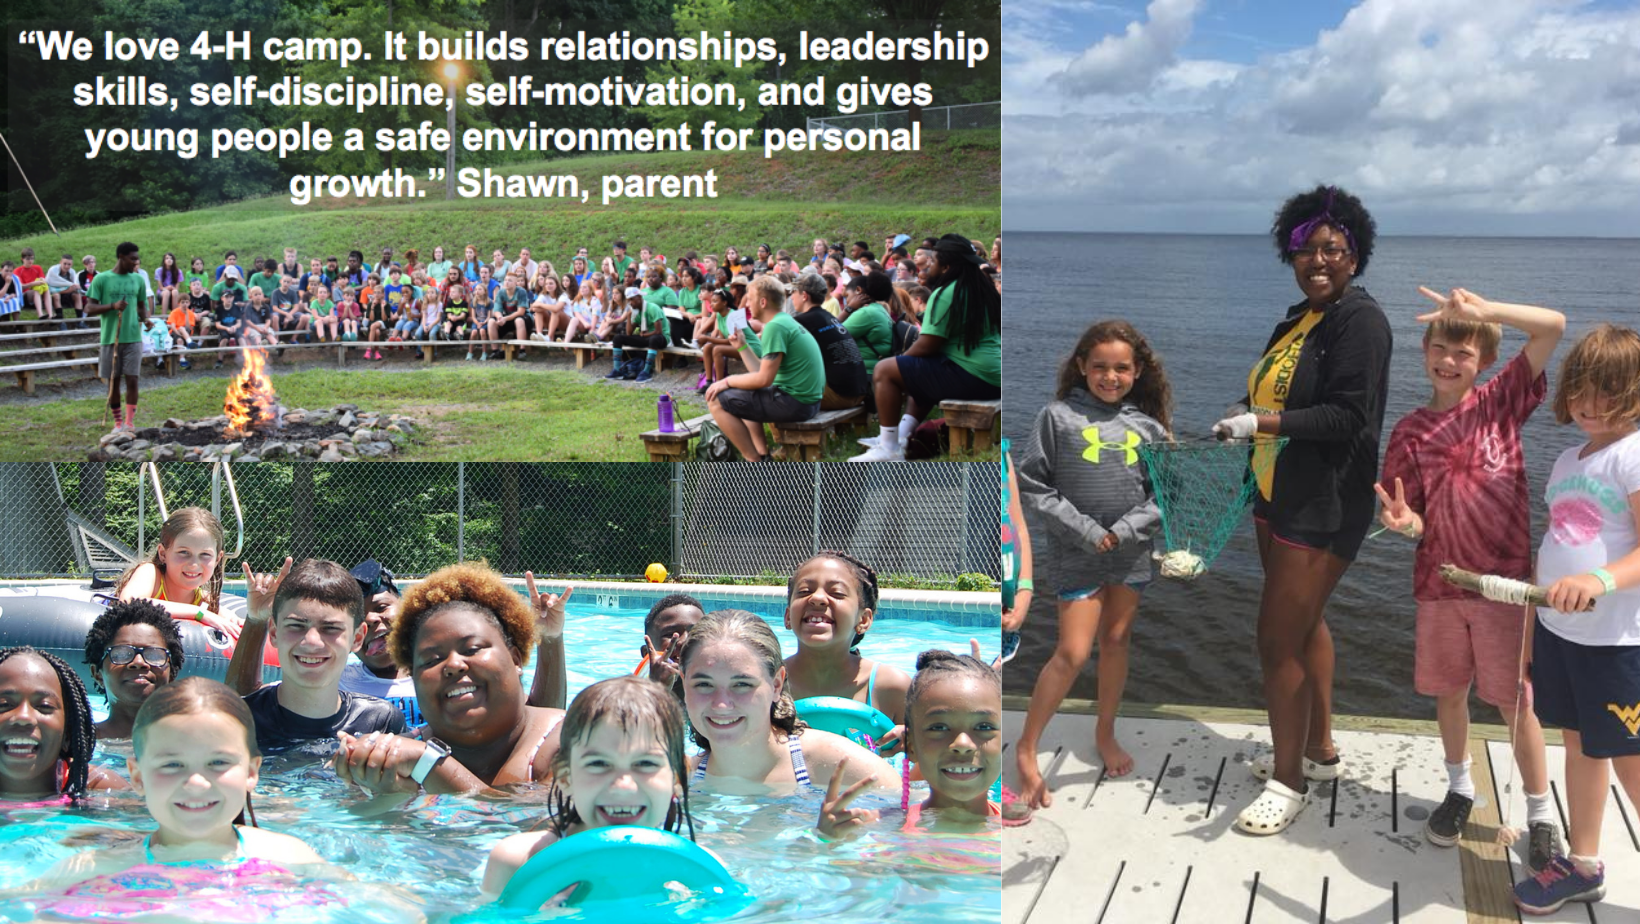 Collection of photos of camp counselors from NC 4-H Camps.